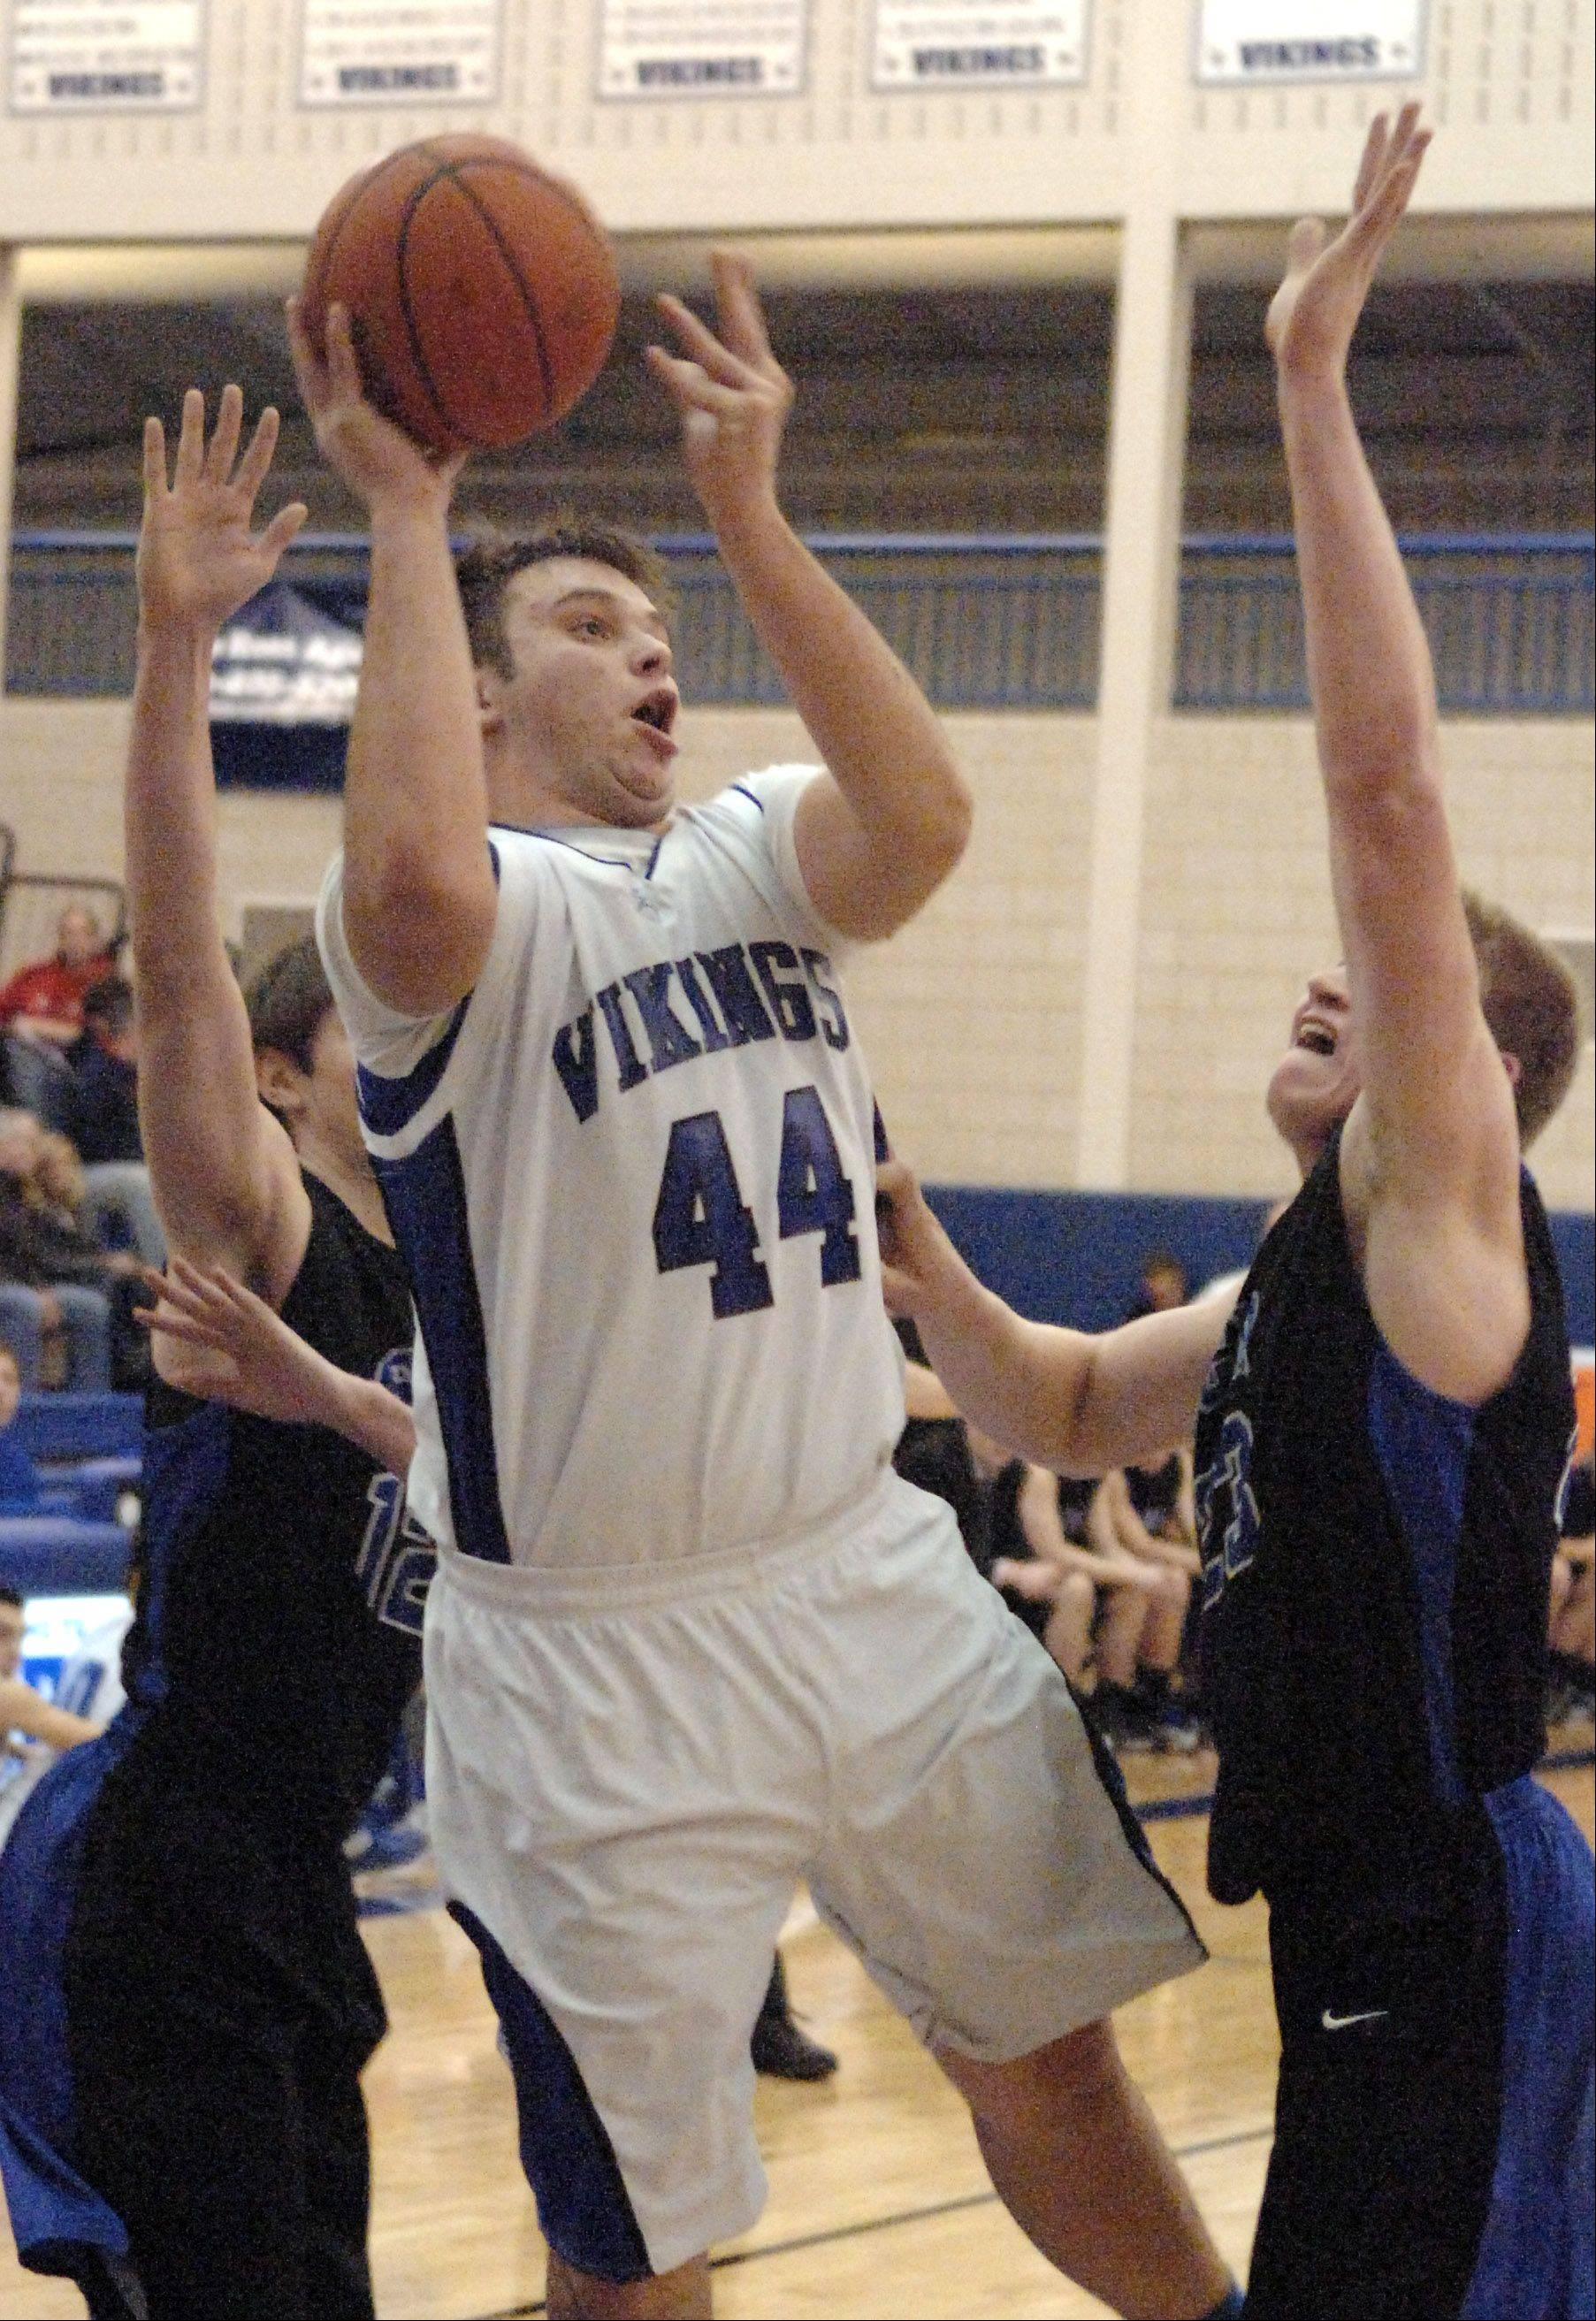 Geneva's Connor Chapman shoots and scores against St. Charles North during Friday's game in Geneva.